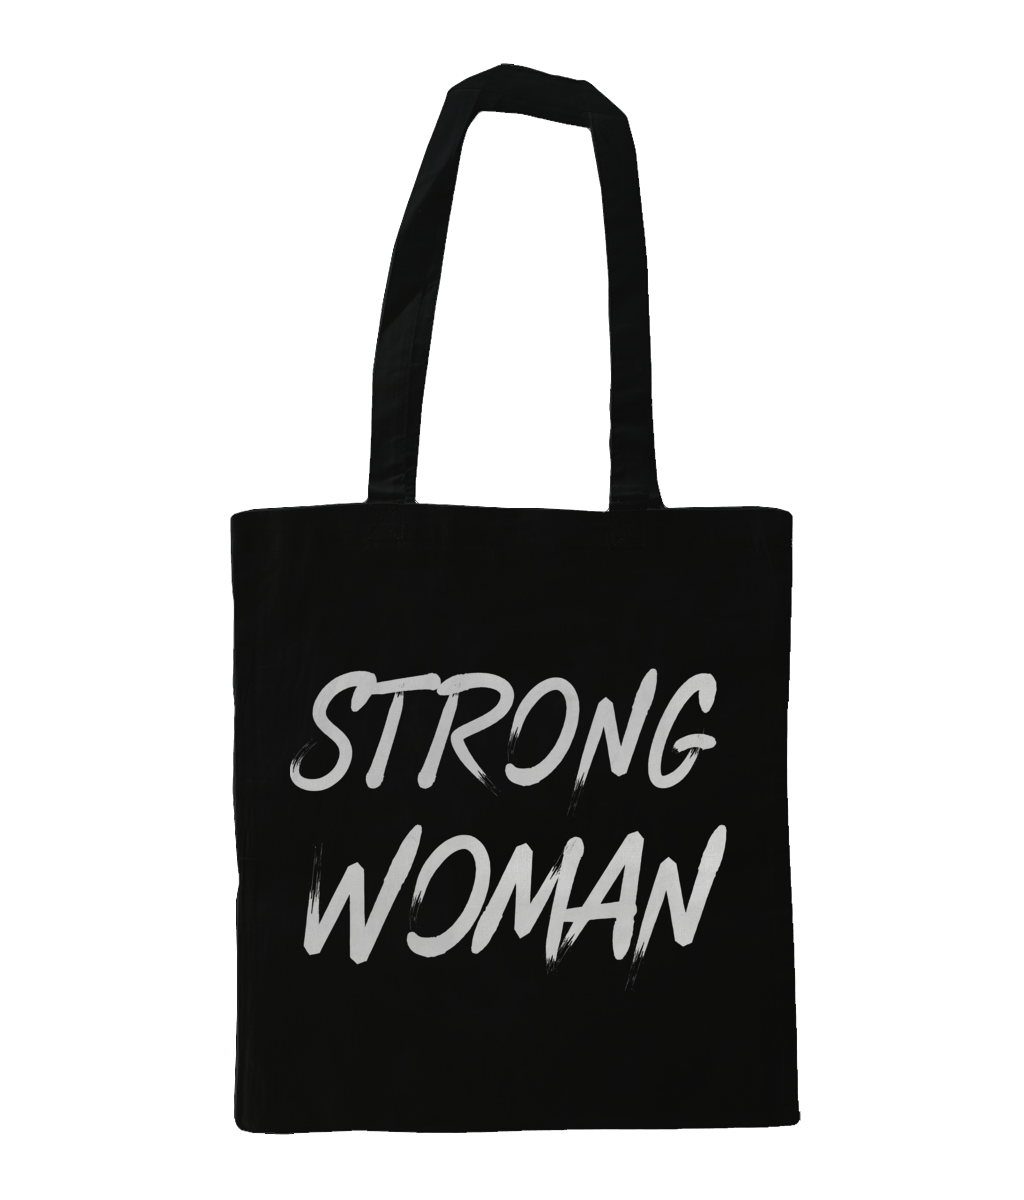 Strong Woman Tote Bag Black - Track and Fit Club